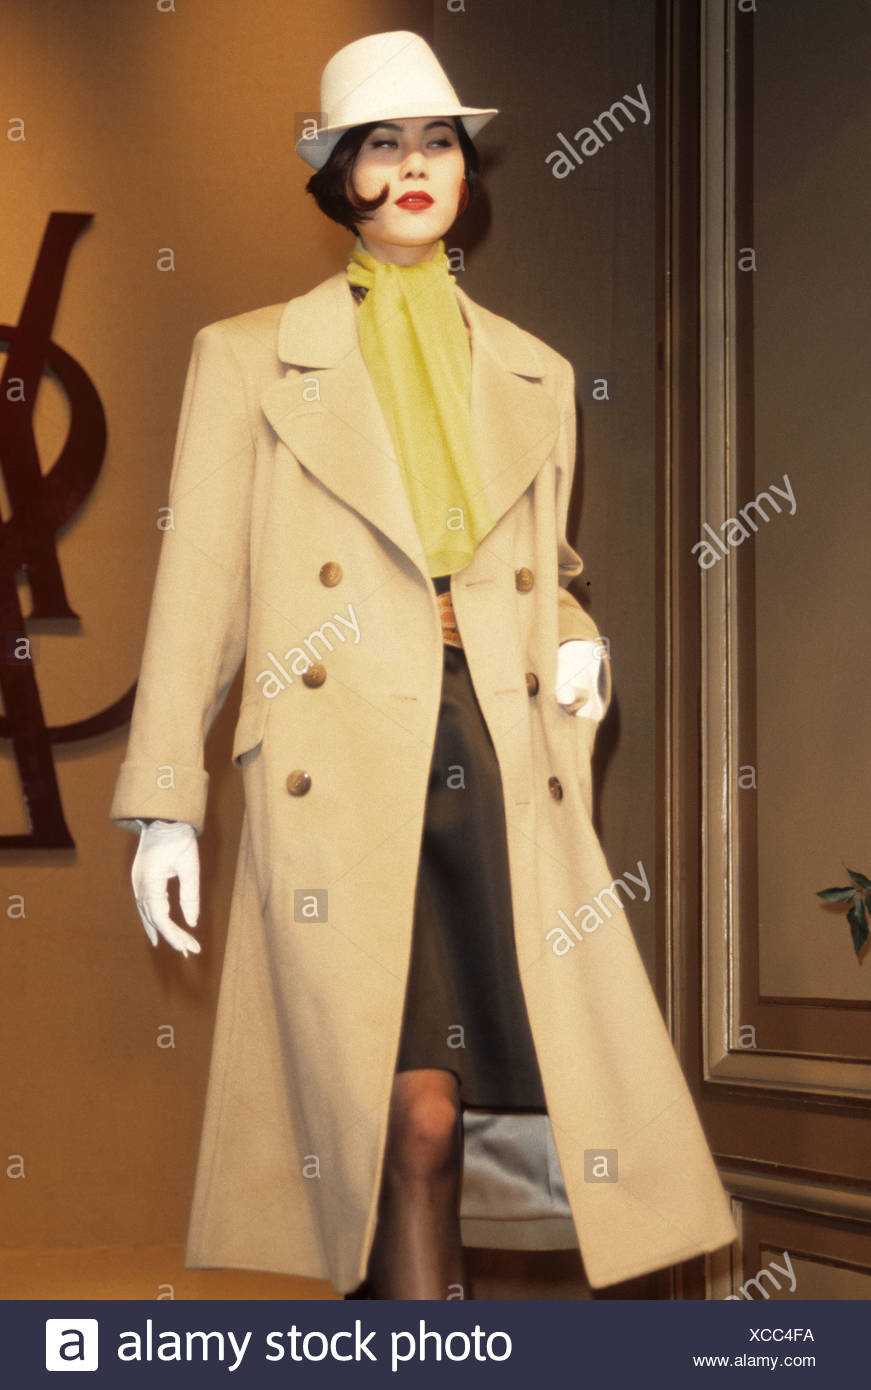 804f5f784f4 Yves Saint Laurent Spring Summer Female wearing beige mac over brown dress,  accessorized yellow scarf and beige trilby hat and